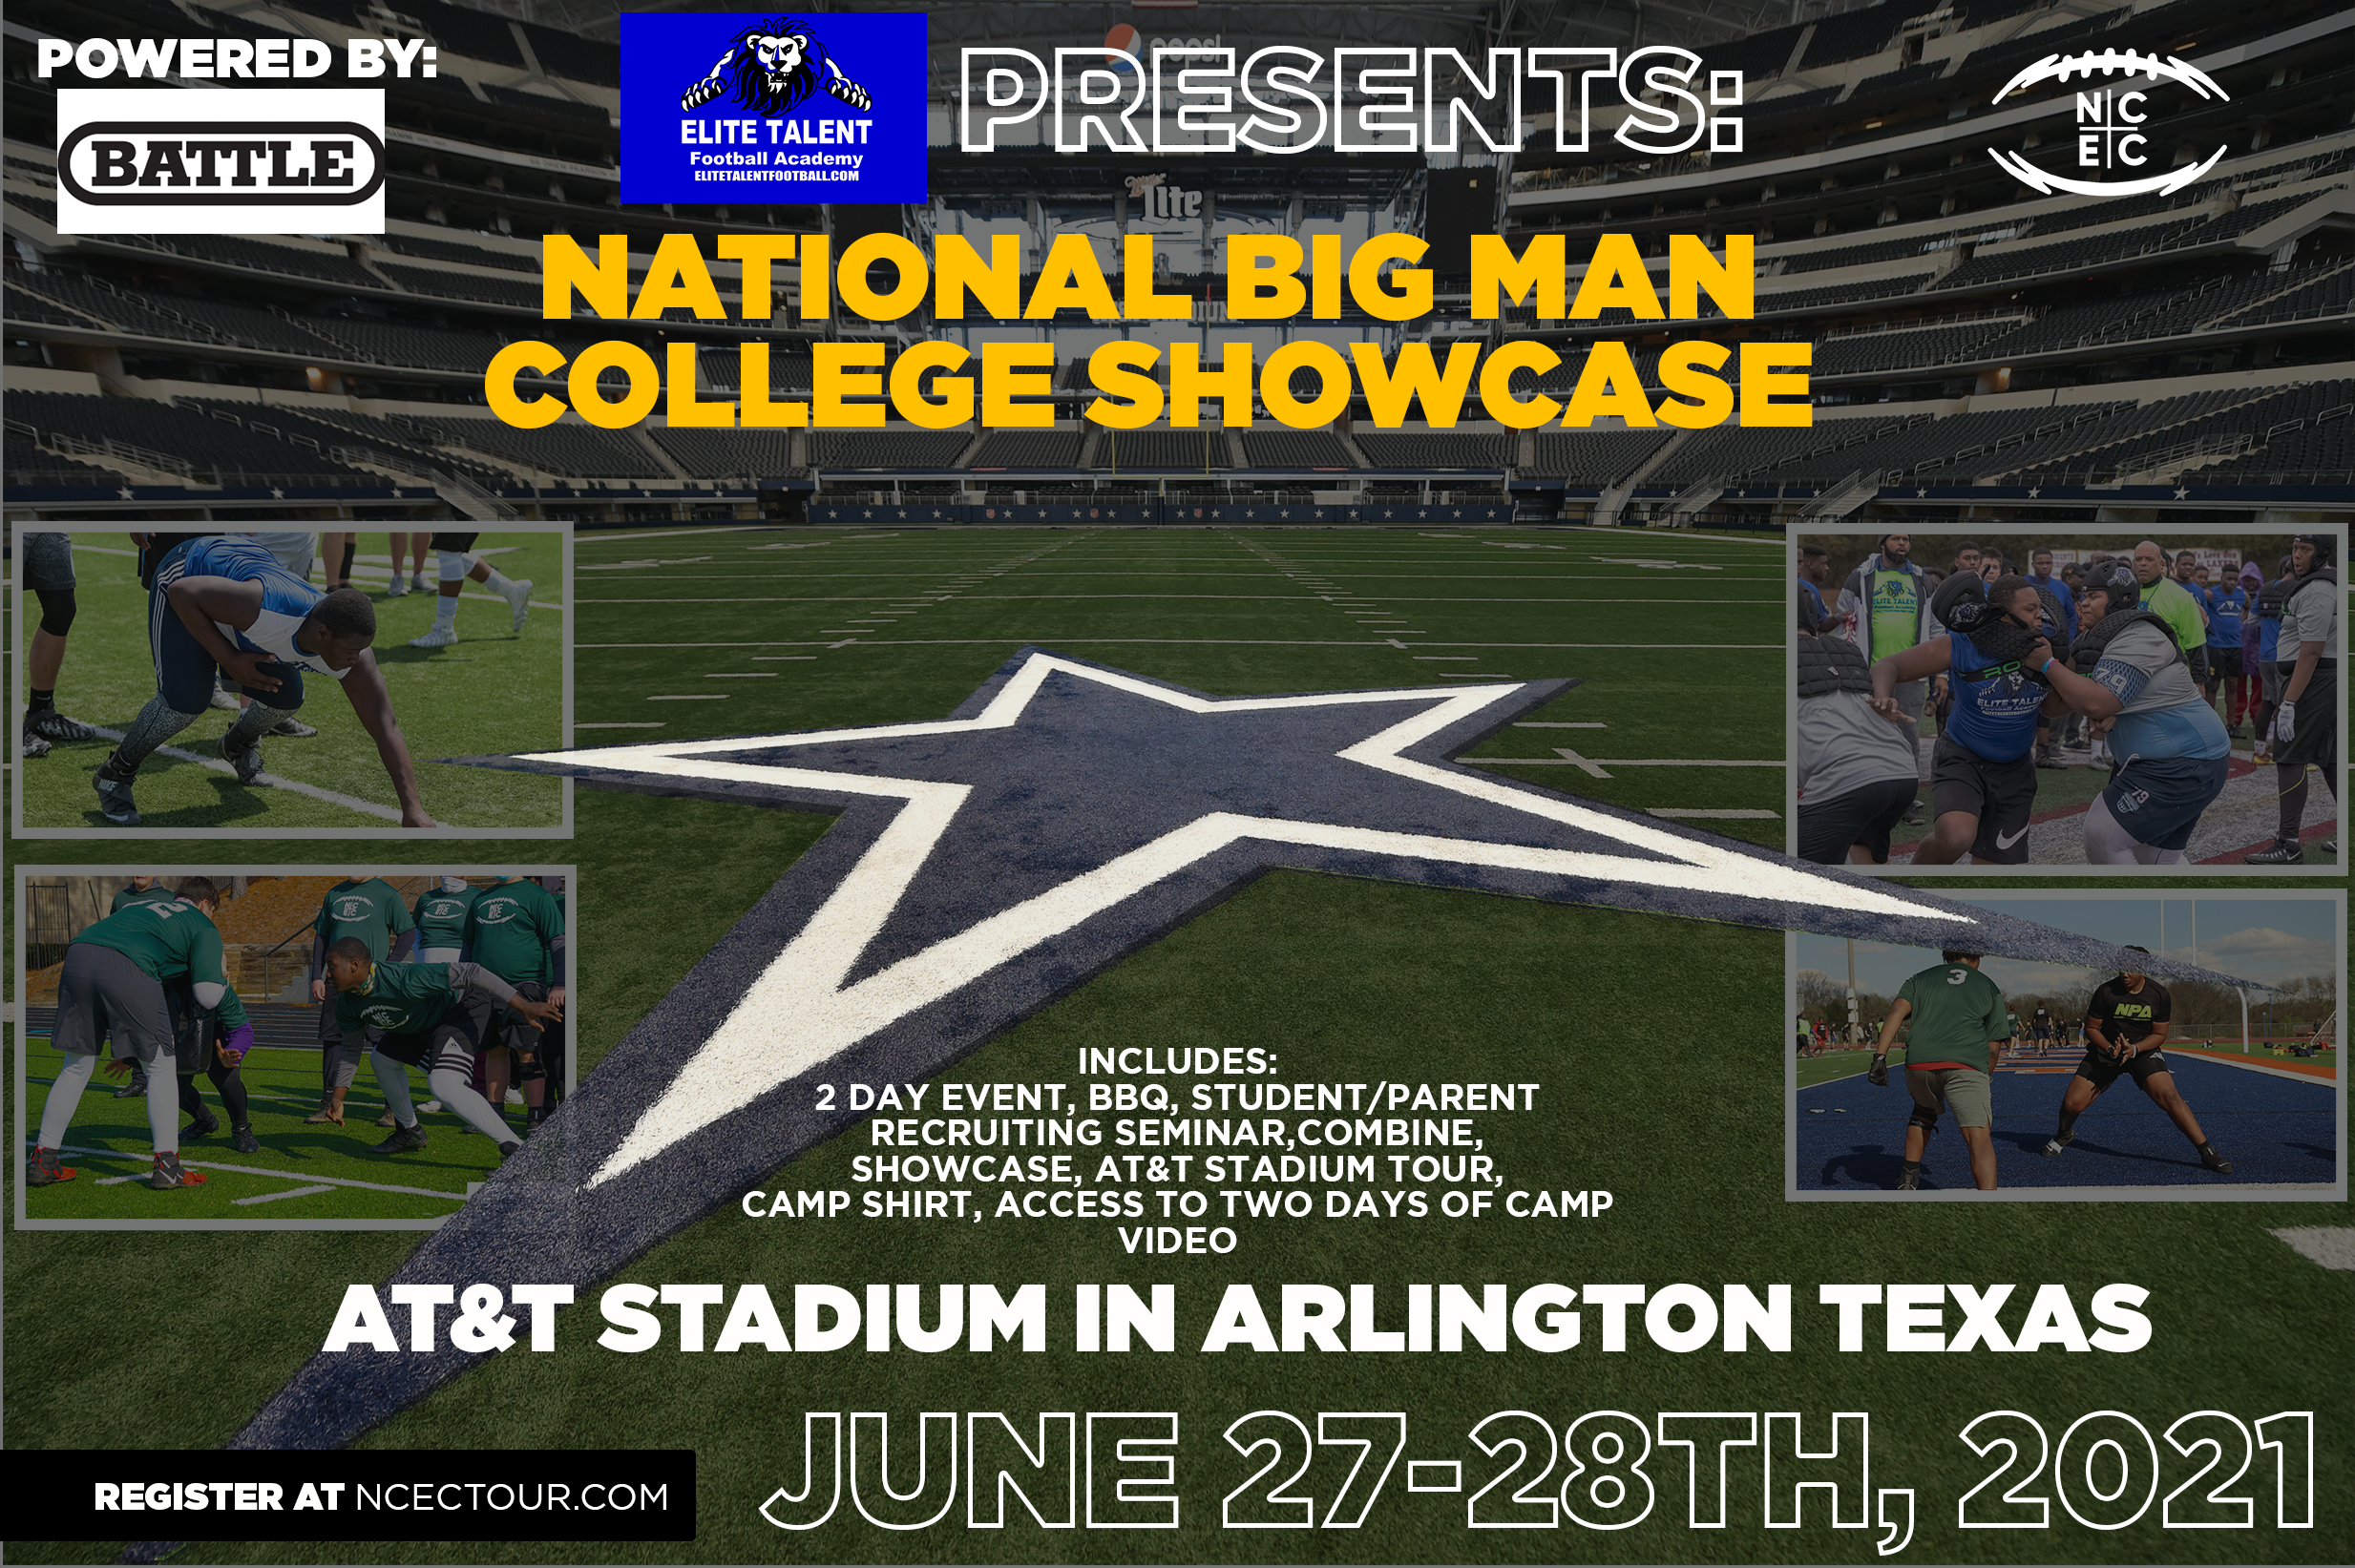 The National 'Big Man Camp' at Dallas Cowboys Stadium Powered by Battle welcomes the Next Generation of Football Stars 6